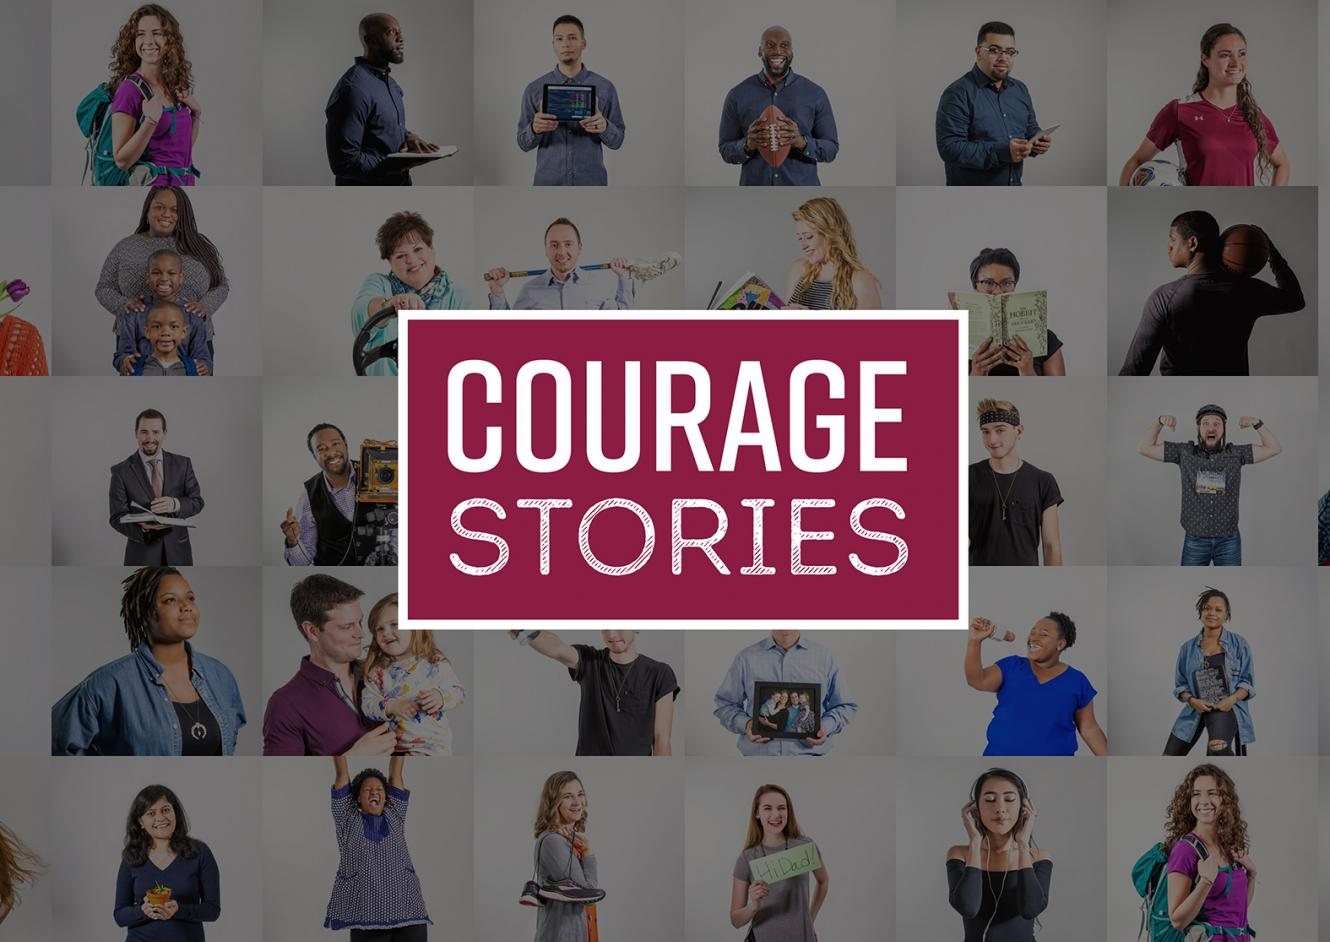 Courage Stories